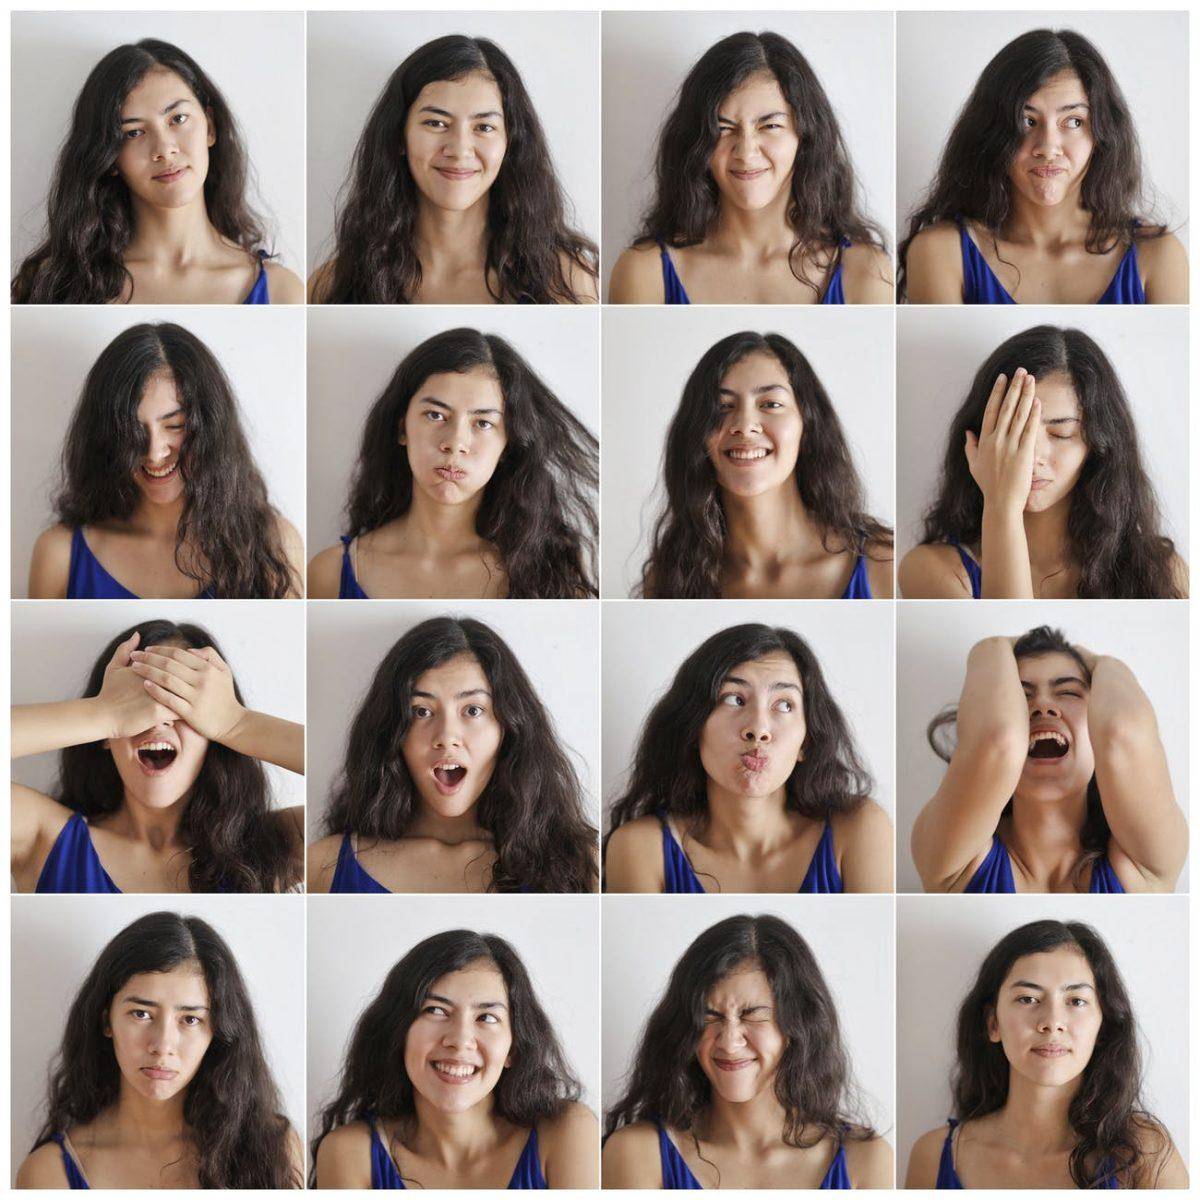 collage of portraits of cheerful woman